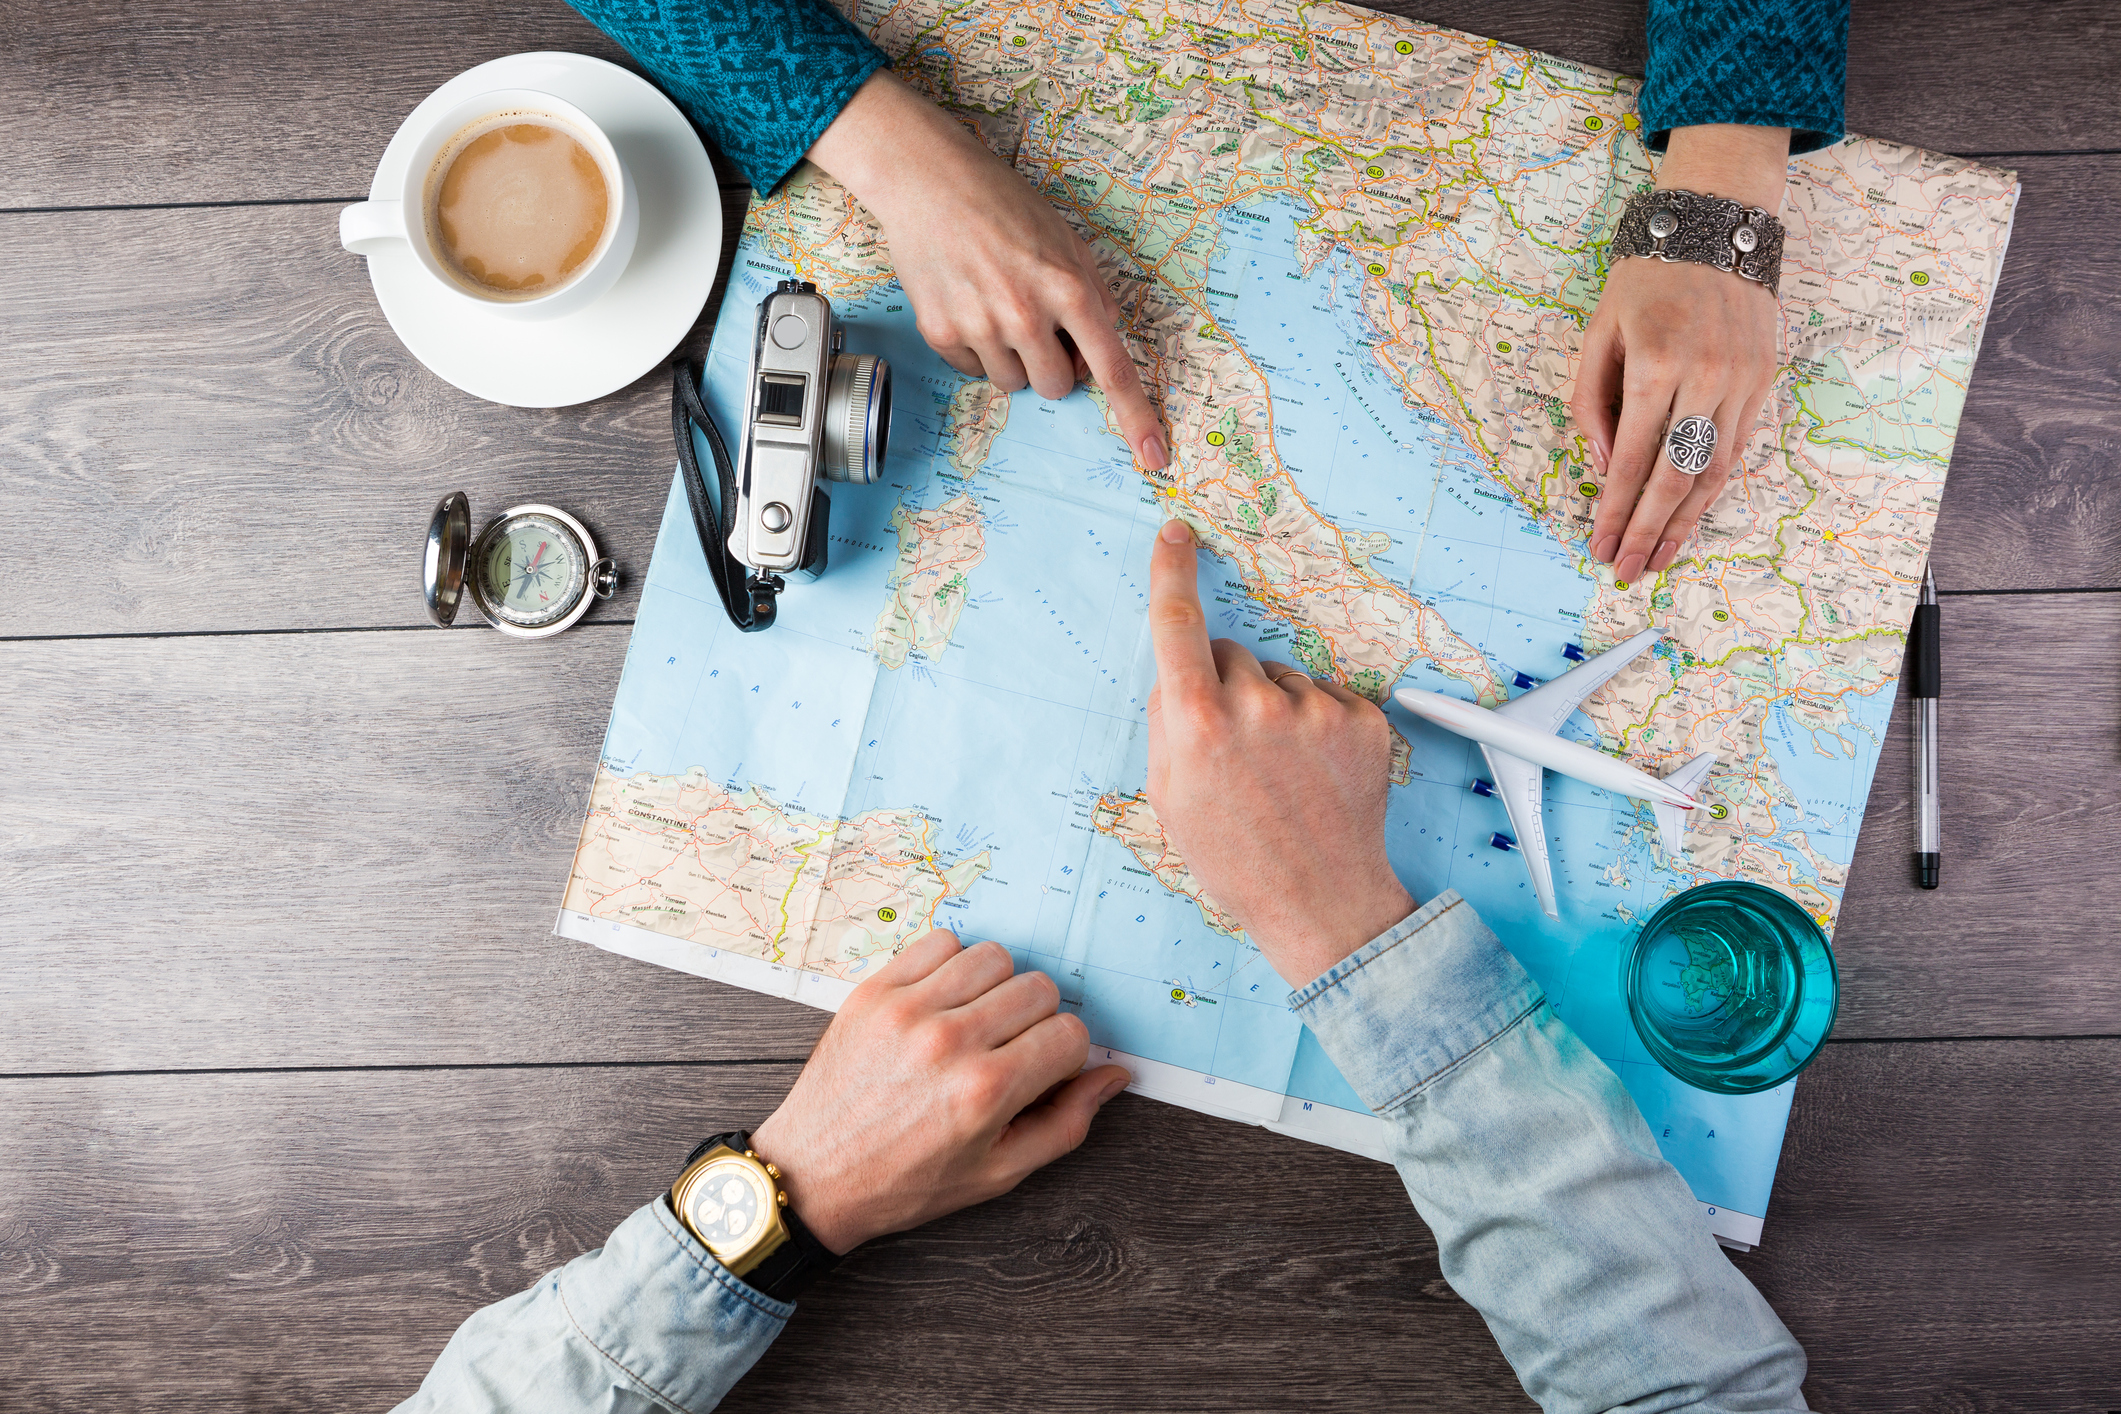 We specialize in travel medicine - Our Nurse Practitioners are travel medicine and vaccination experts.